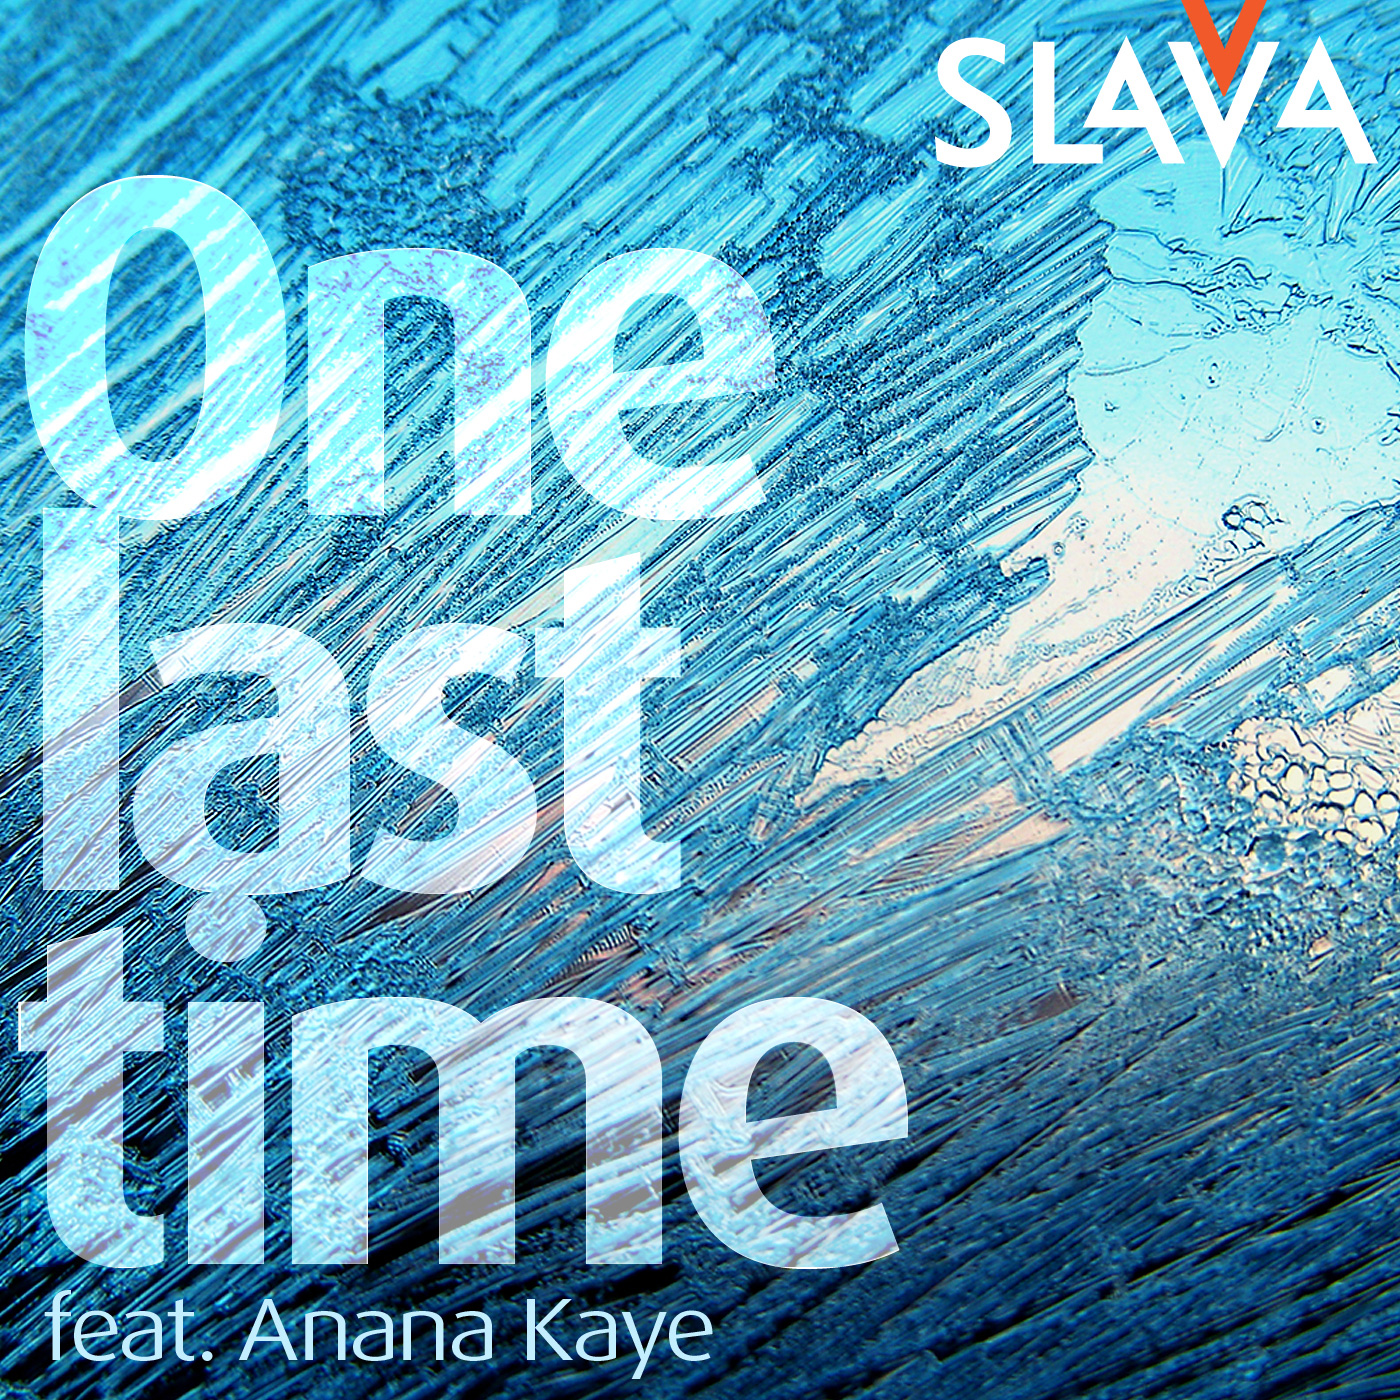 Slava V feat. Anana Kaye - One Last Time